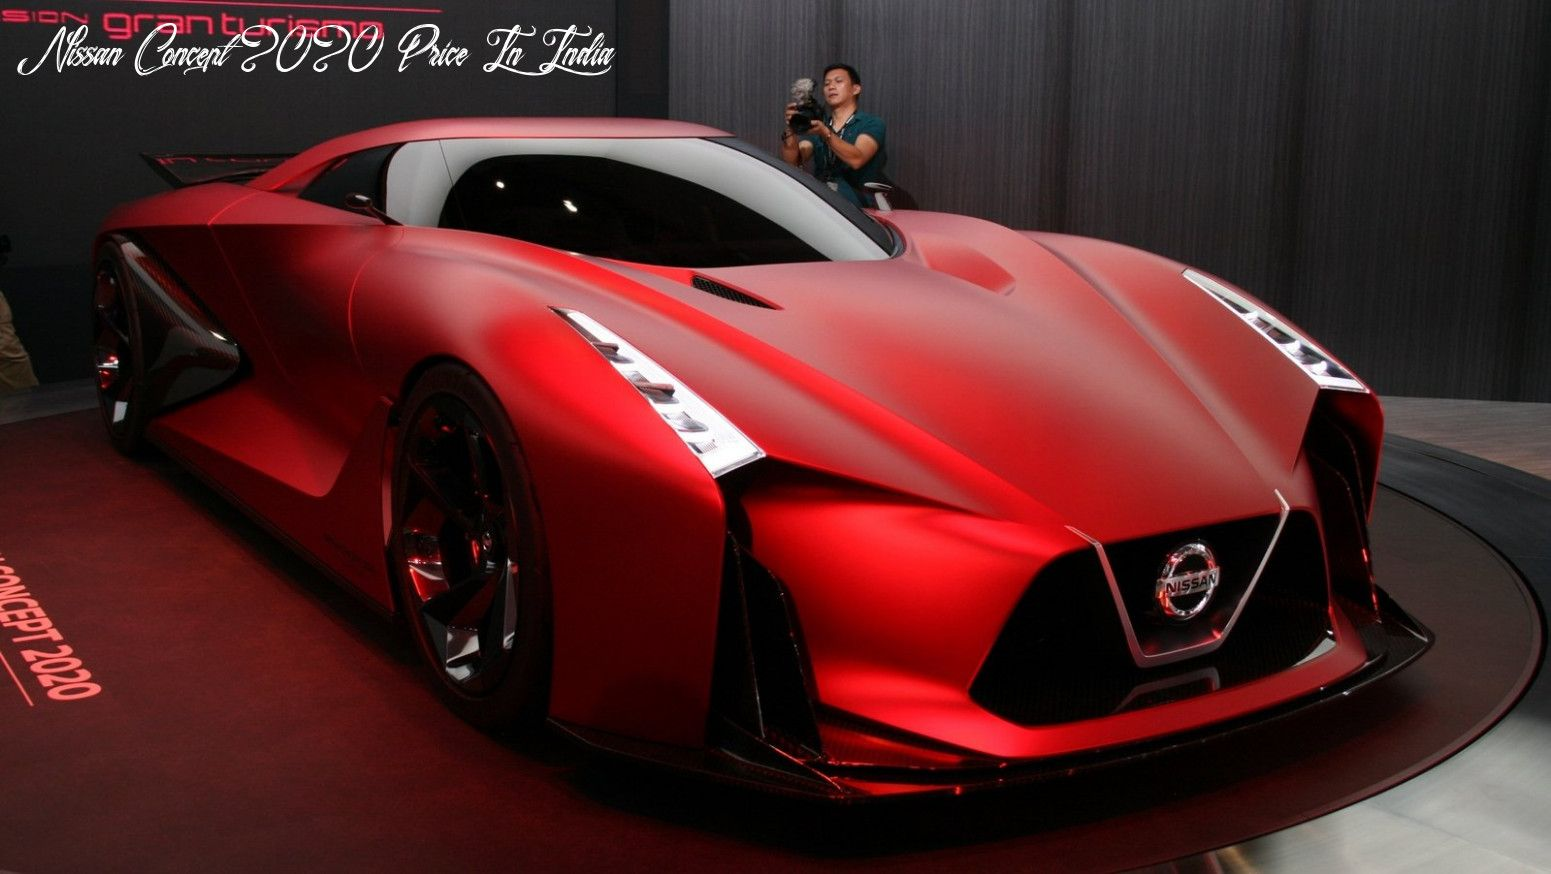 Nissan Concept 2020 Price In India New Model And Performance In 2020 Nissan Gtr Nissan Gt Nissan Gt R